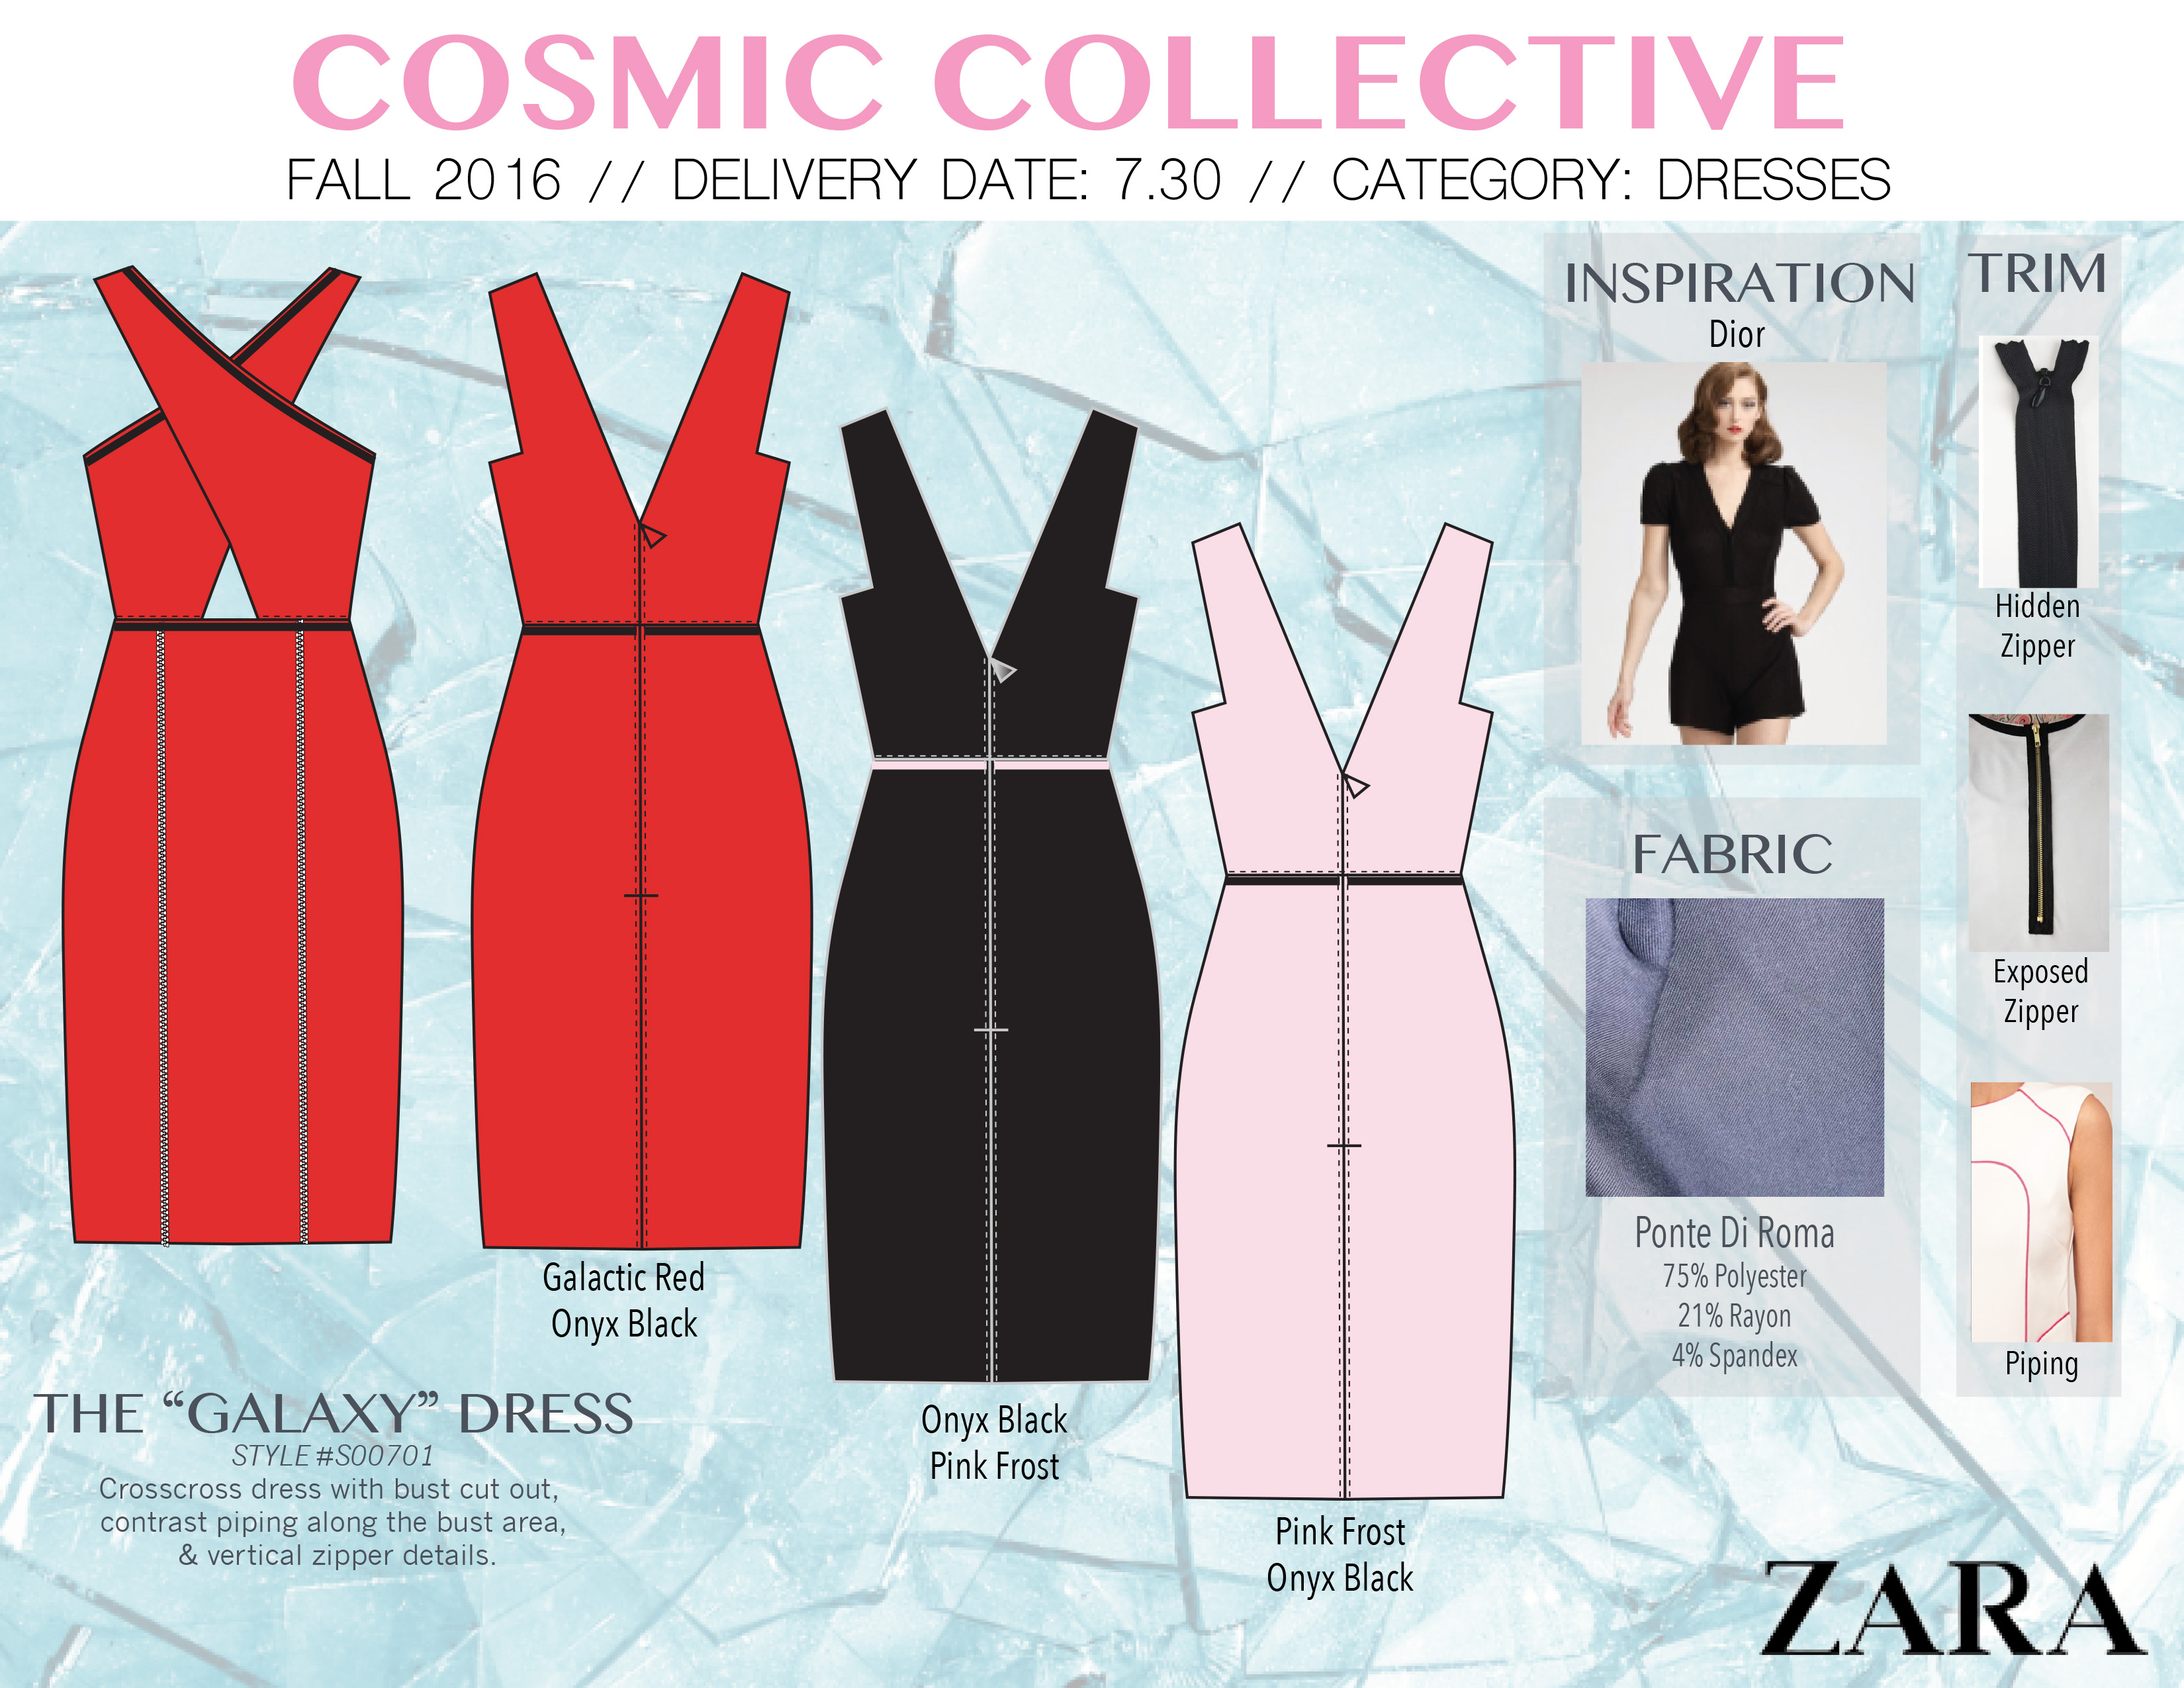 cosmic collective galaxy dress - jacqueline bridgford